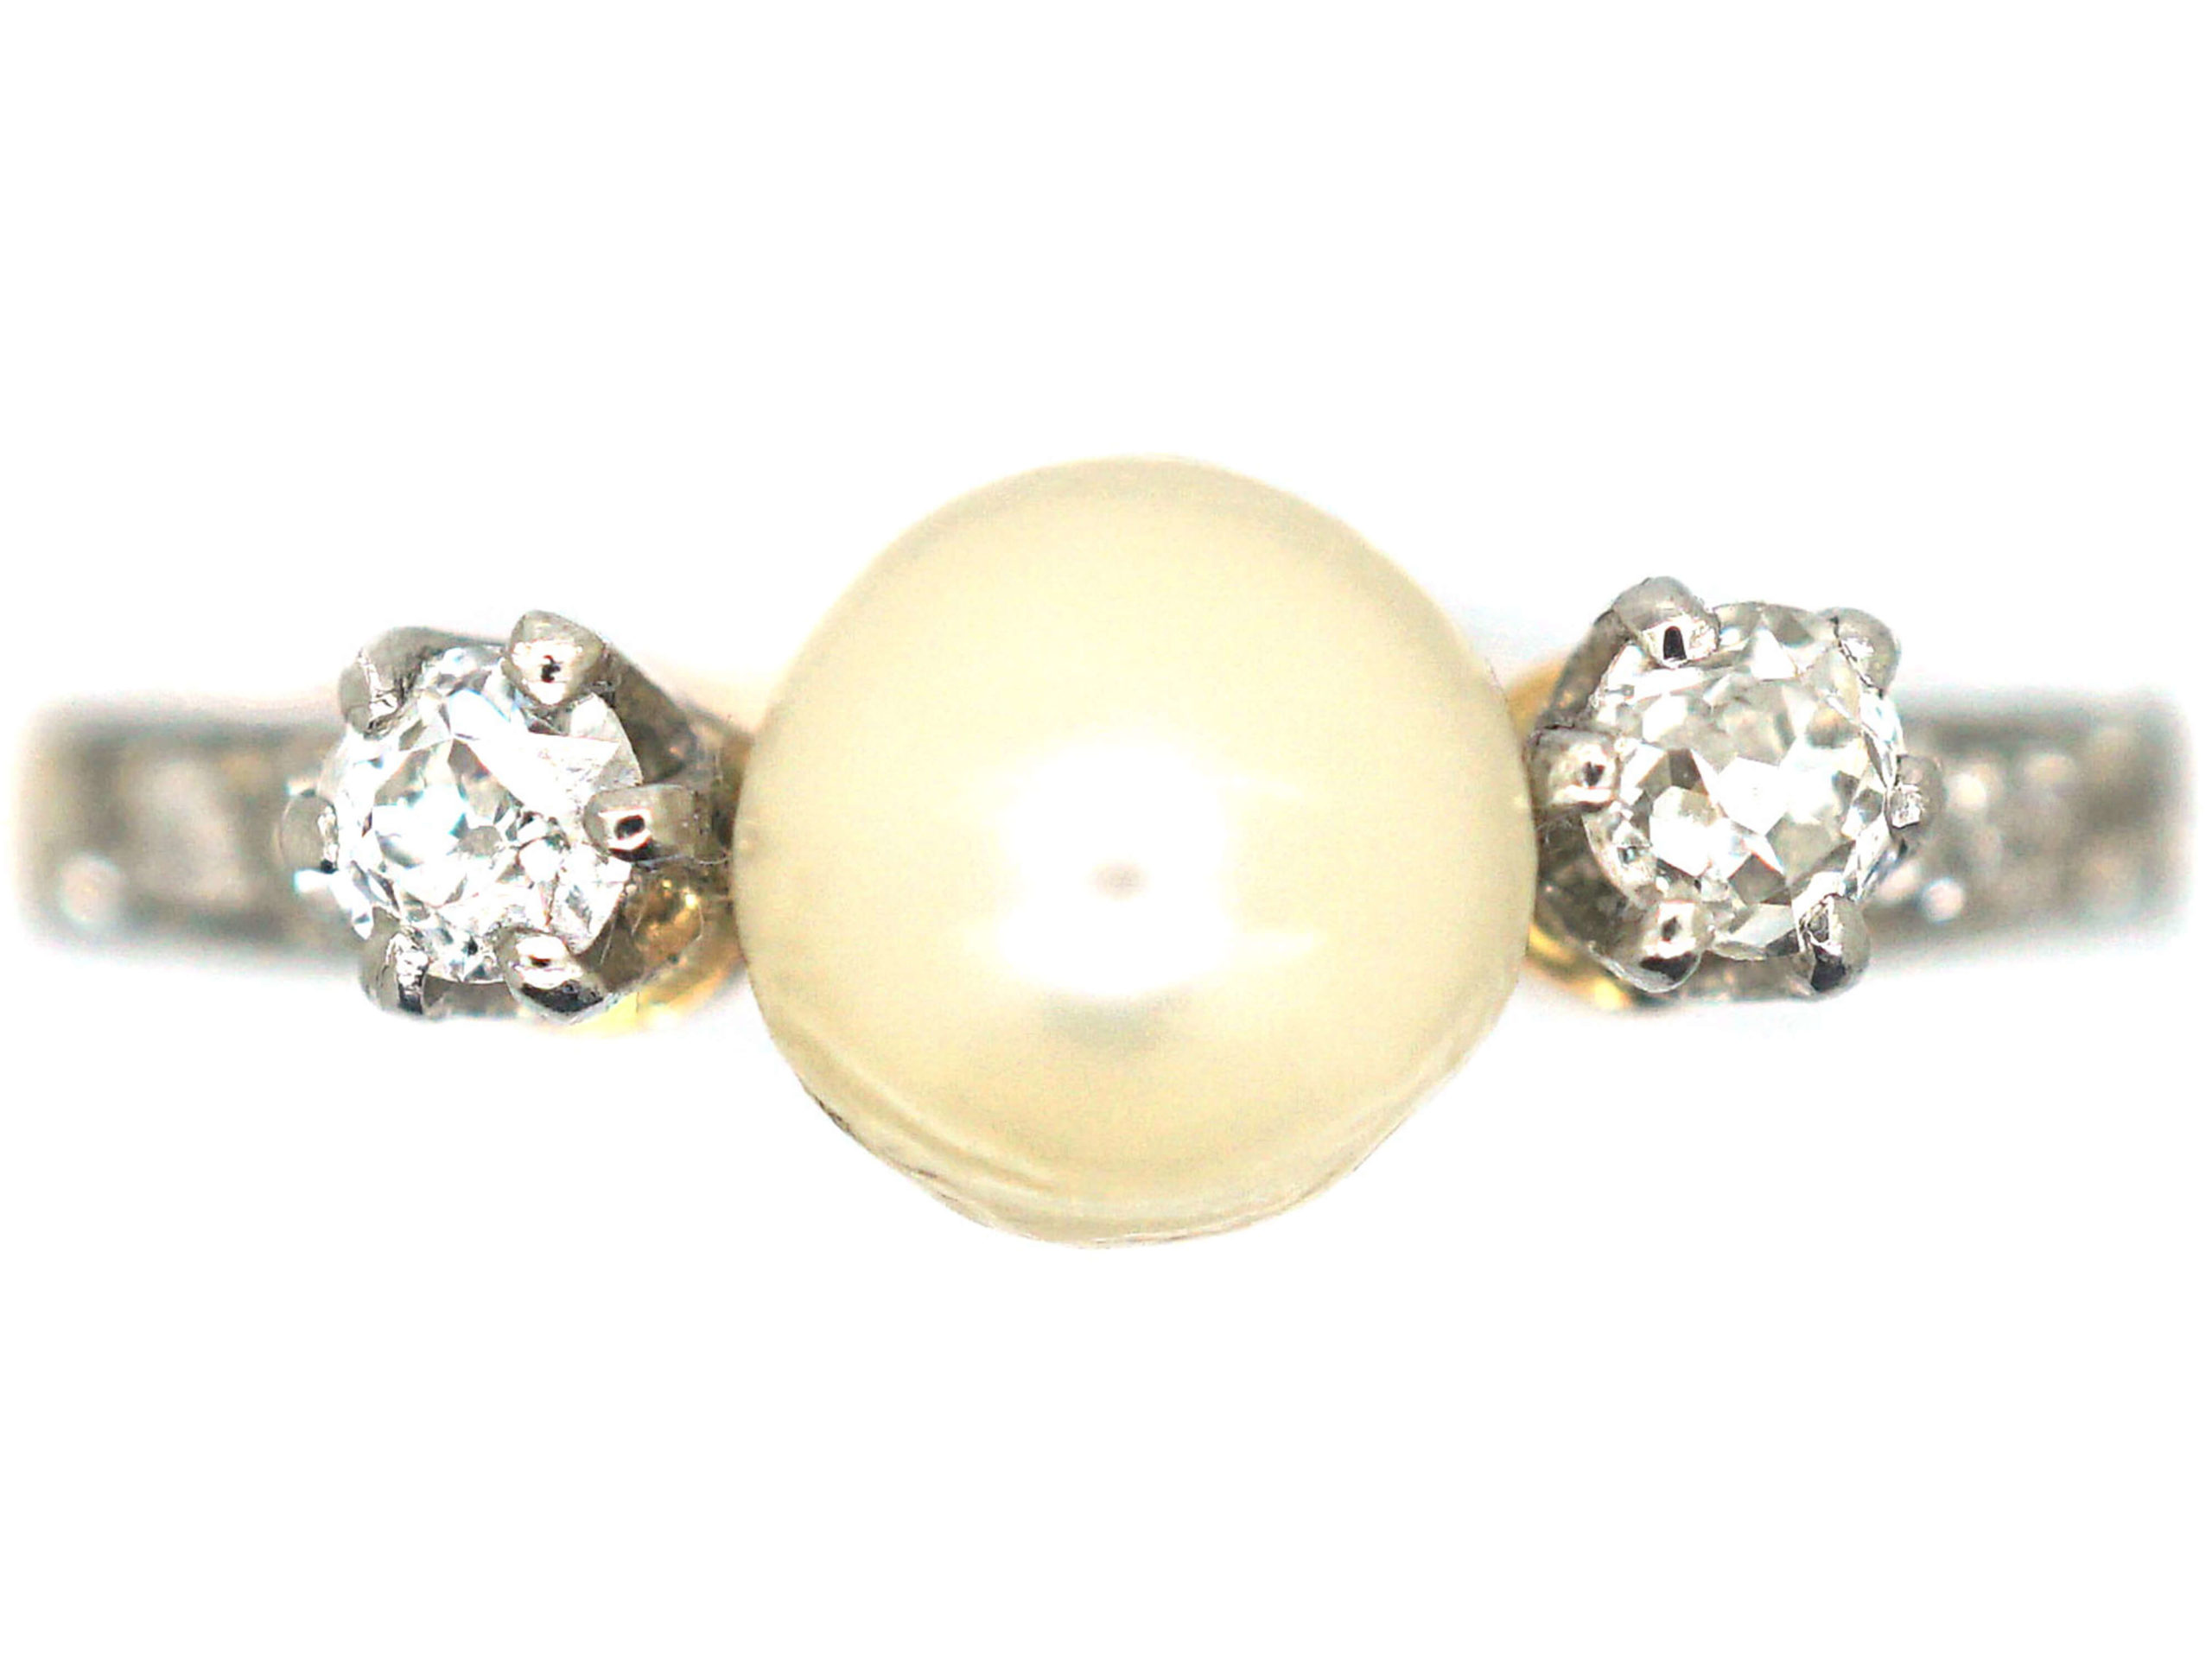 French Belle Epoque 18ct Gold, Natural Bouton Pearl & Diamond Ring